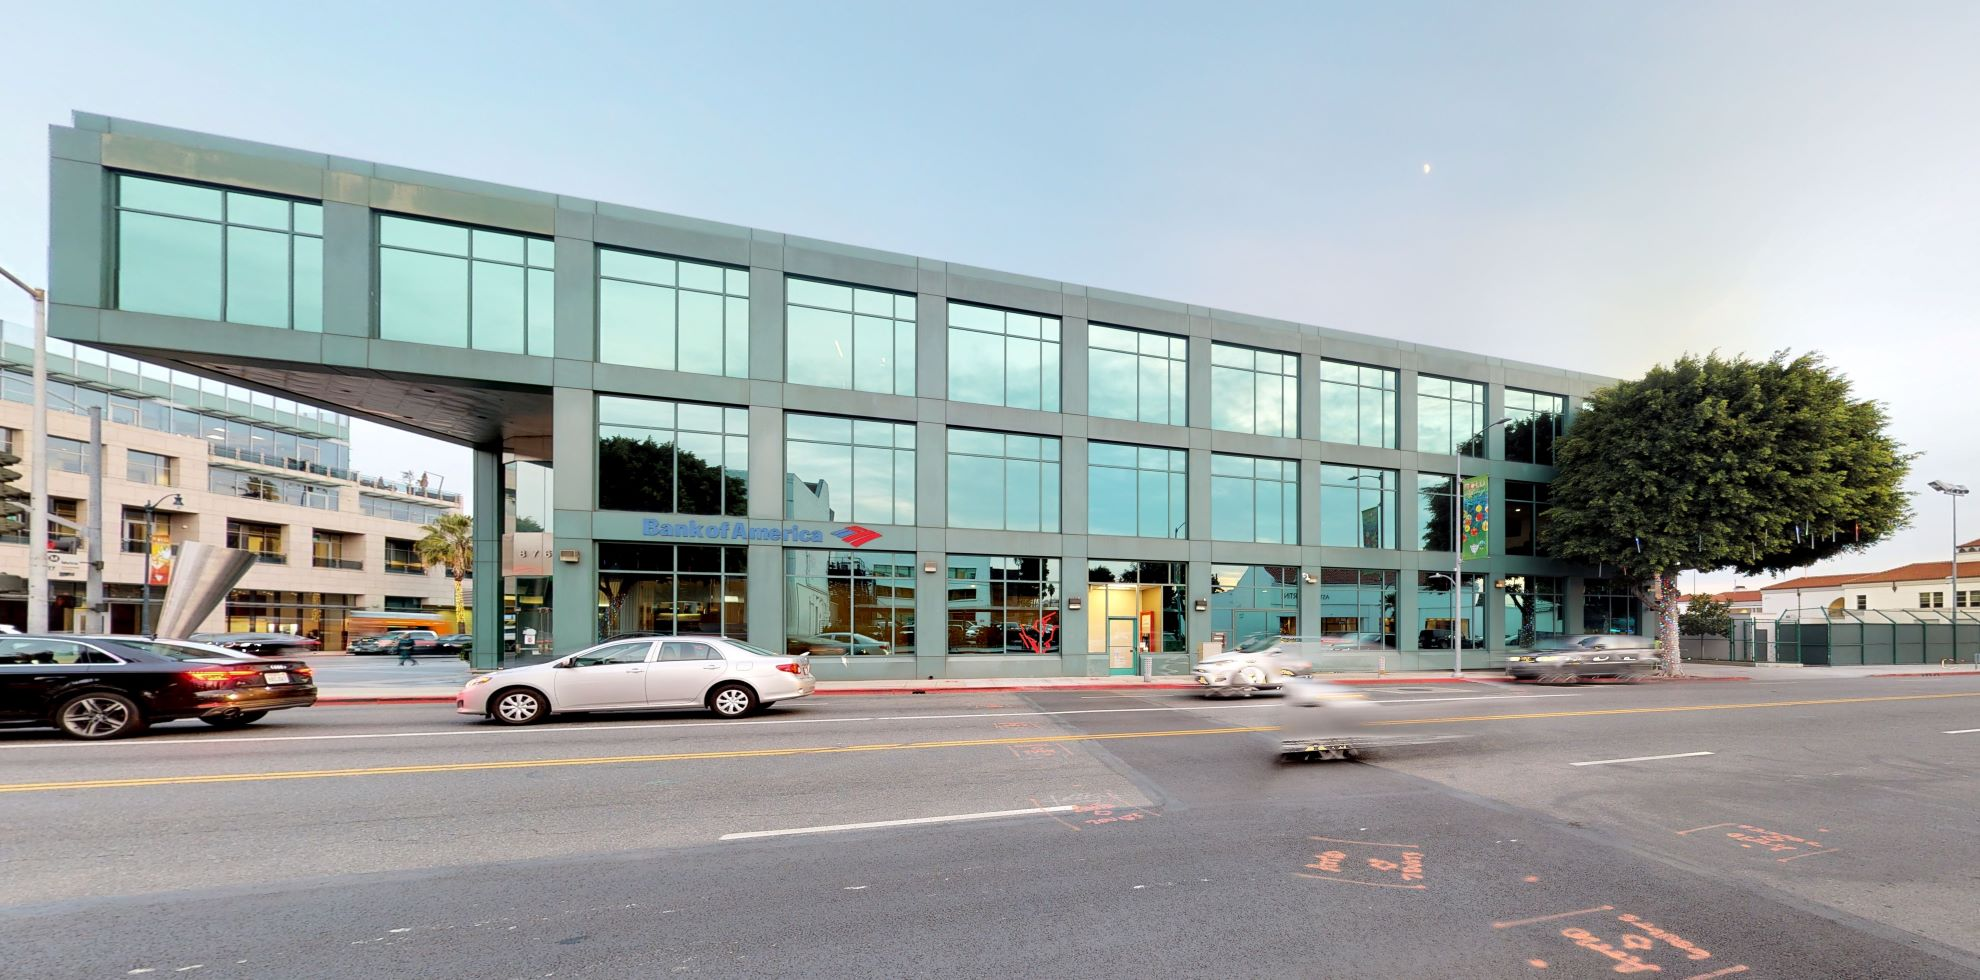 Bank of America financial center with walk-up ATM   8760 Wilshire Blvd, Beverly Hills, CA 90211